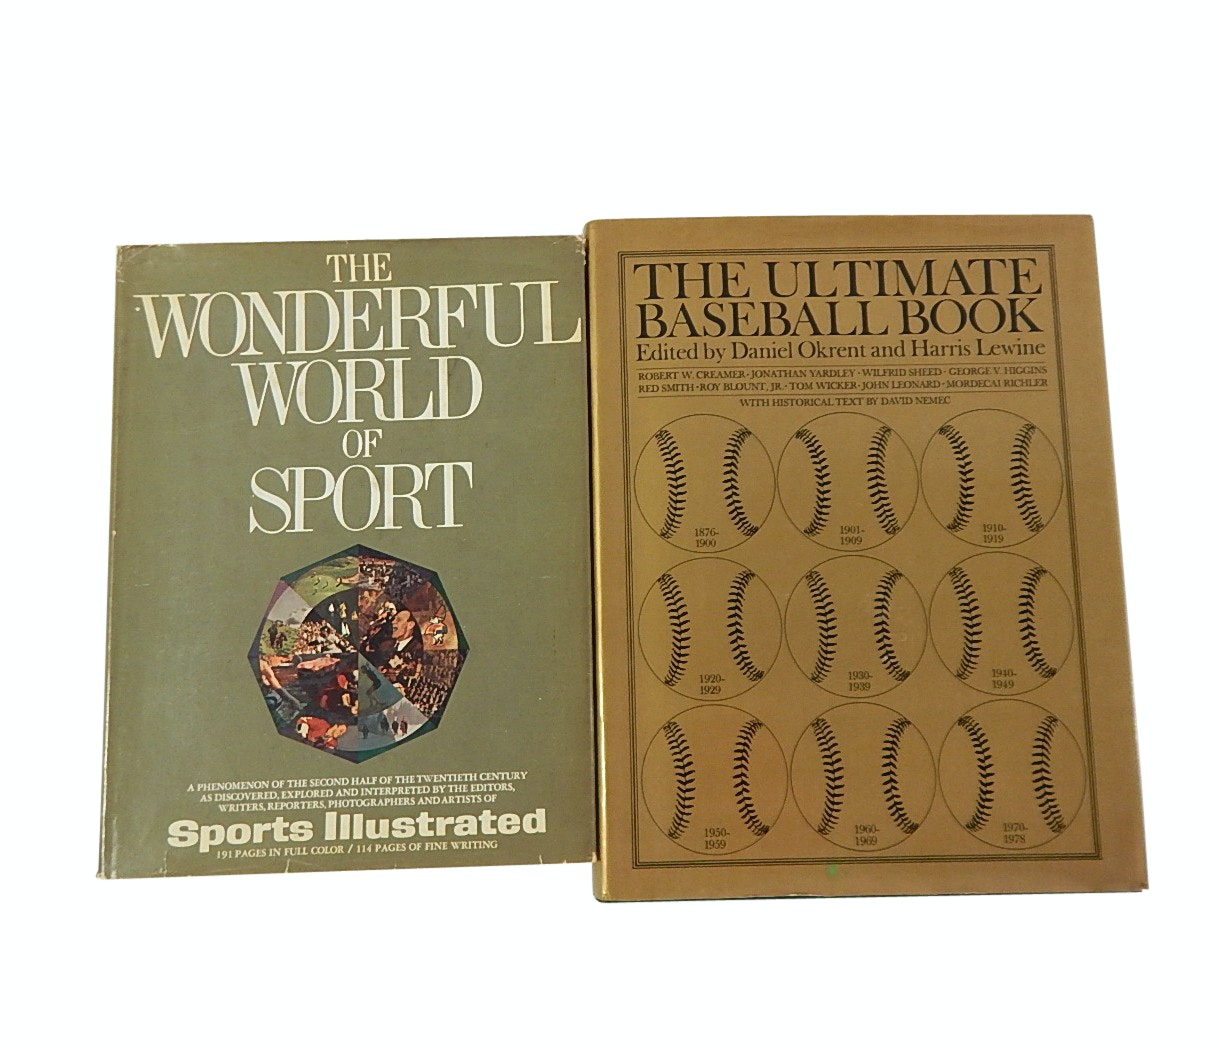 """1979 """"The Ultimate Baseball Book"""" and 1967 """"The Wonderful World of Sport"""" Book"""